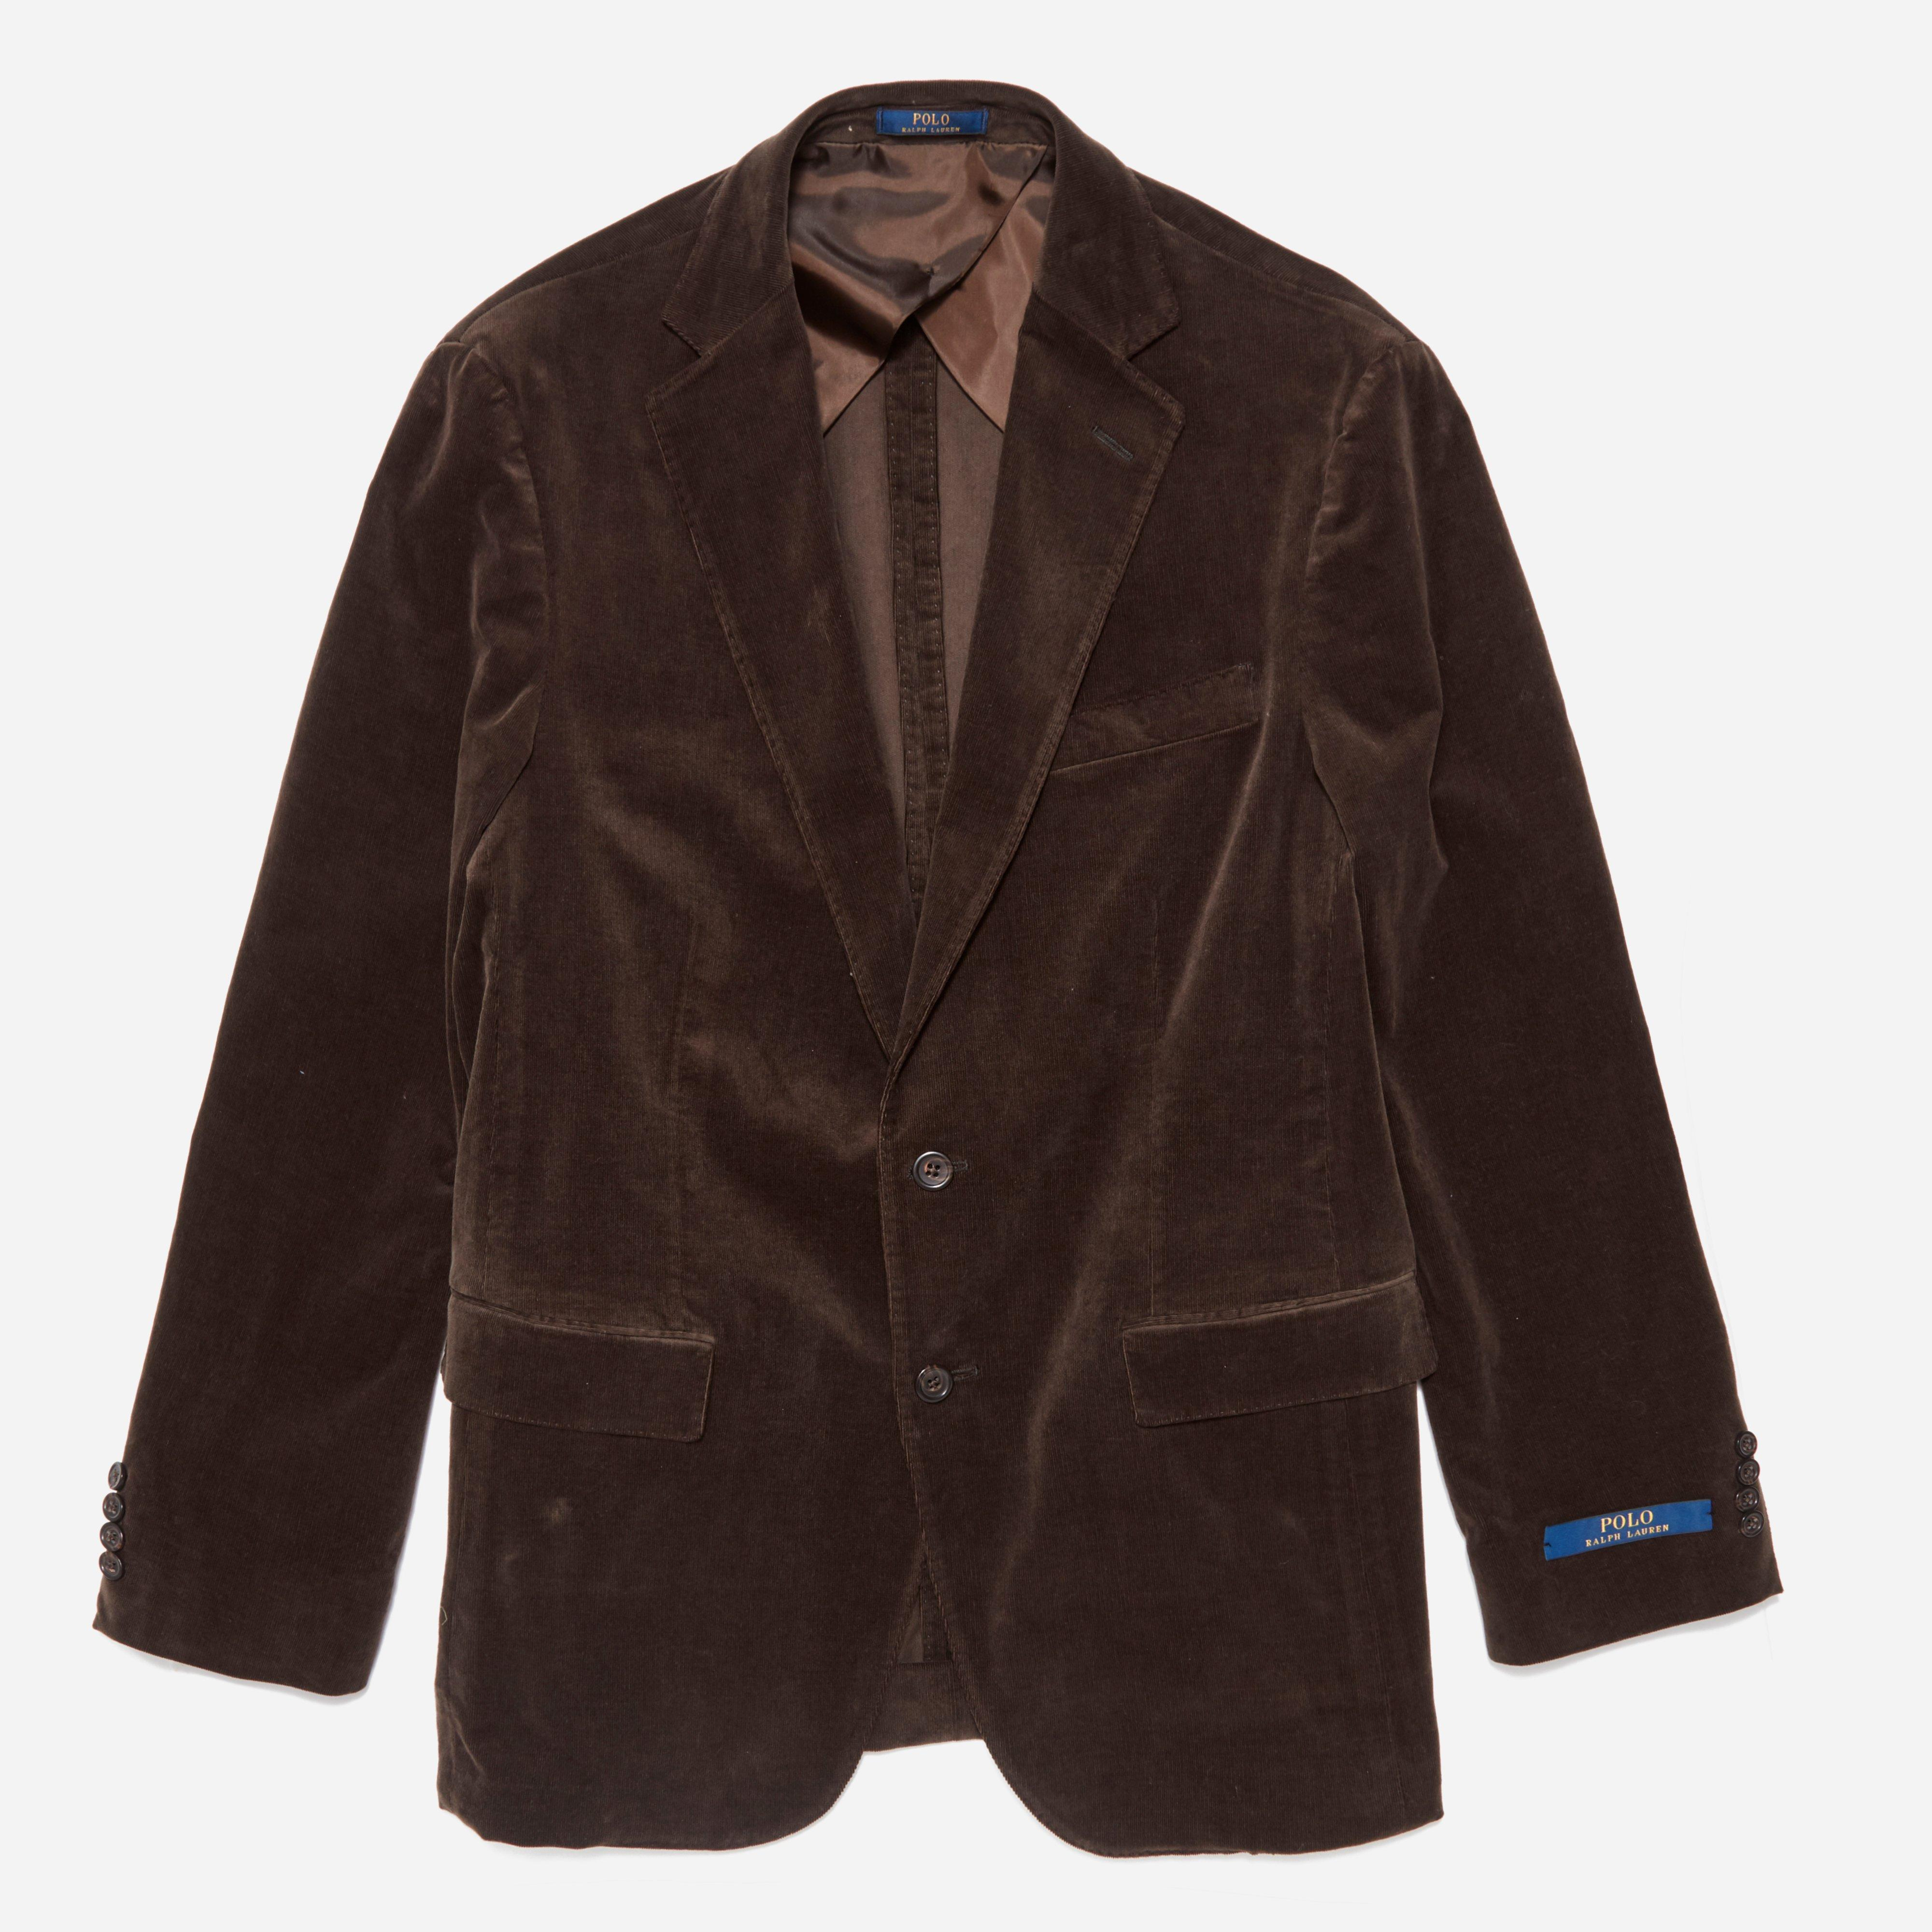 Polo Ralph Lauren Morgan Corduroy Suit Jacket